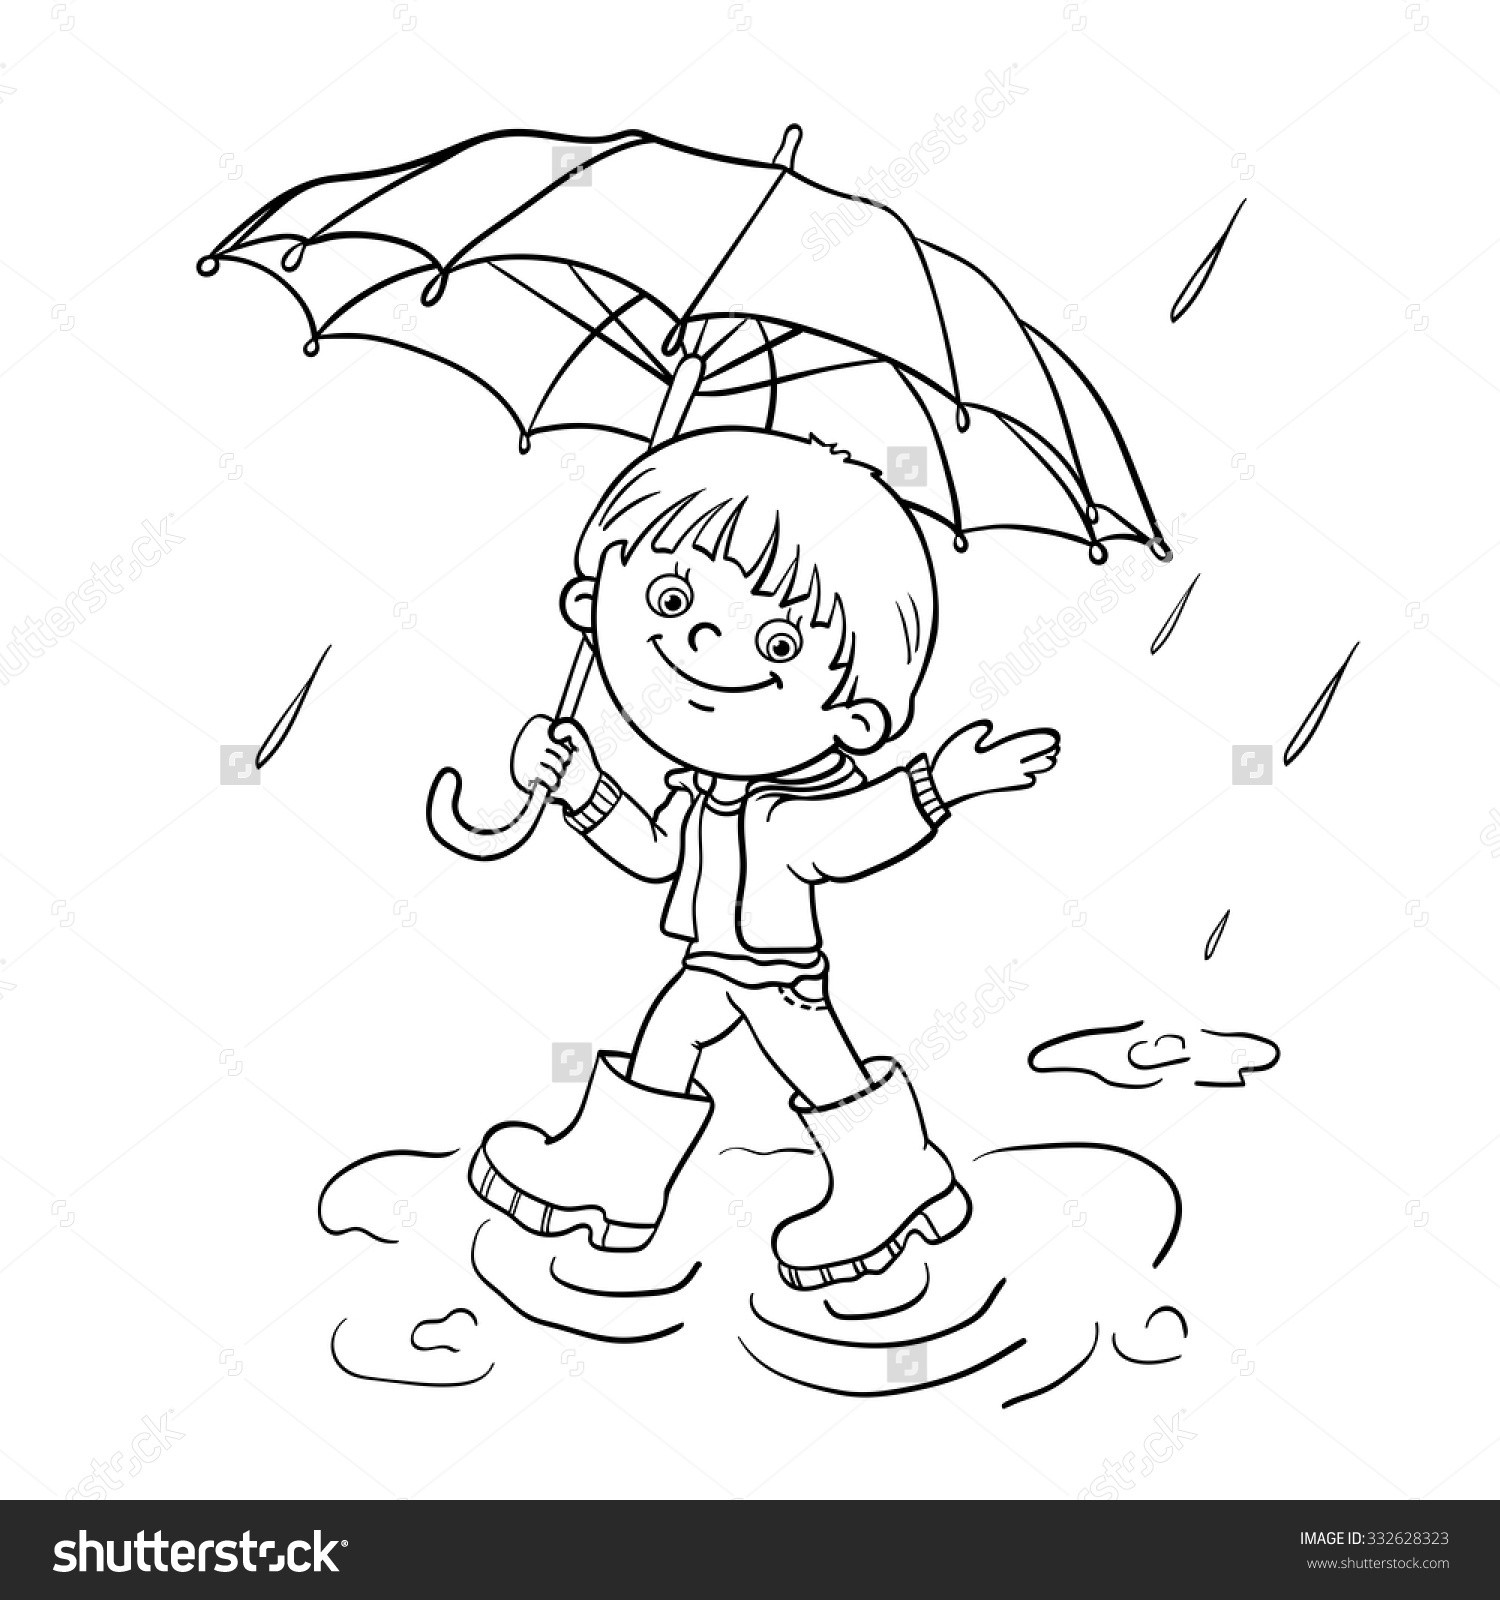 1500x1600 Umbrella Coloring Pages For Kids Best Of Duck With Umbrella Under